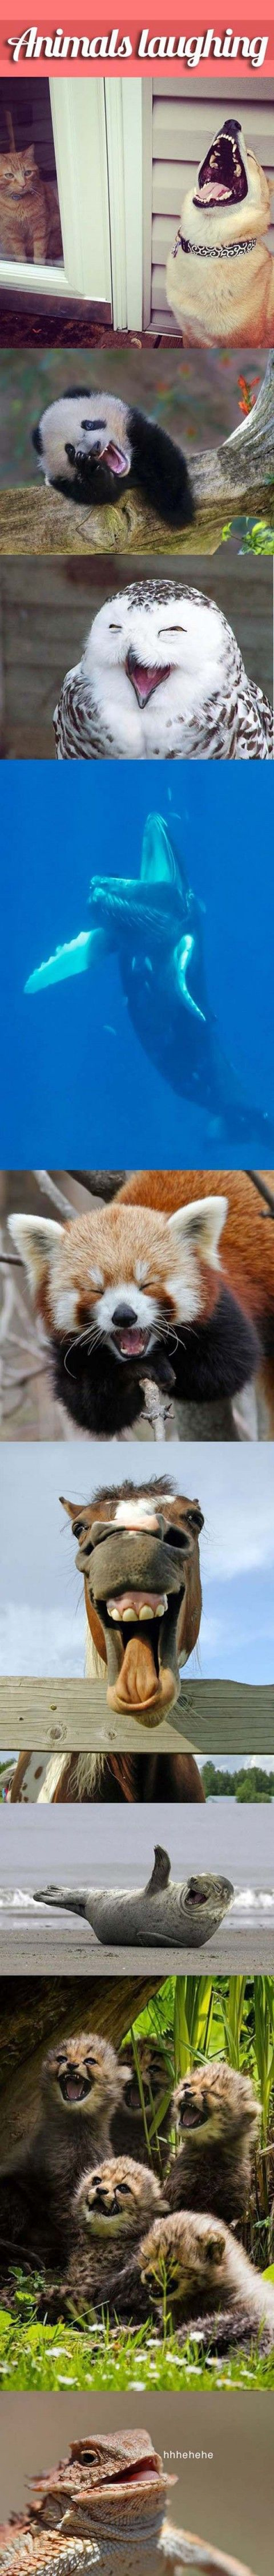 Funny Animals 163 (23 pict)   Funny pictures